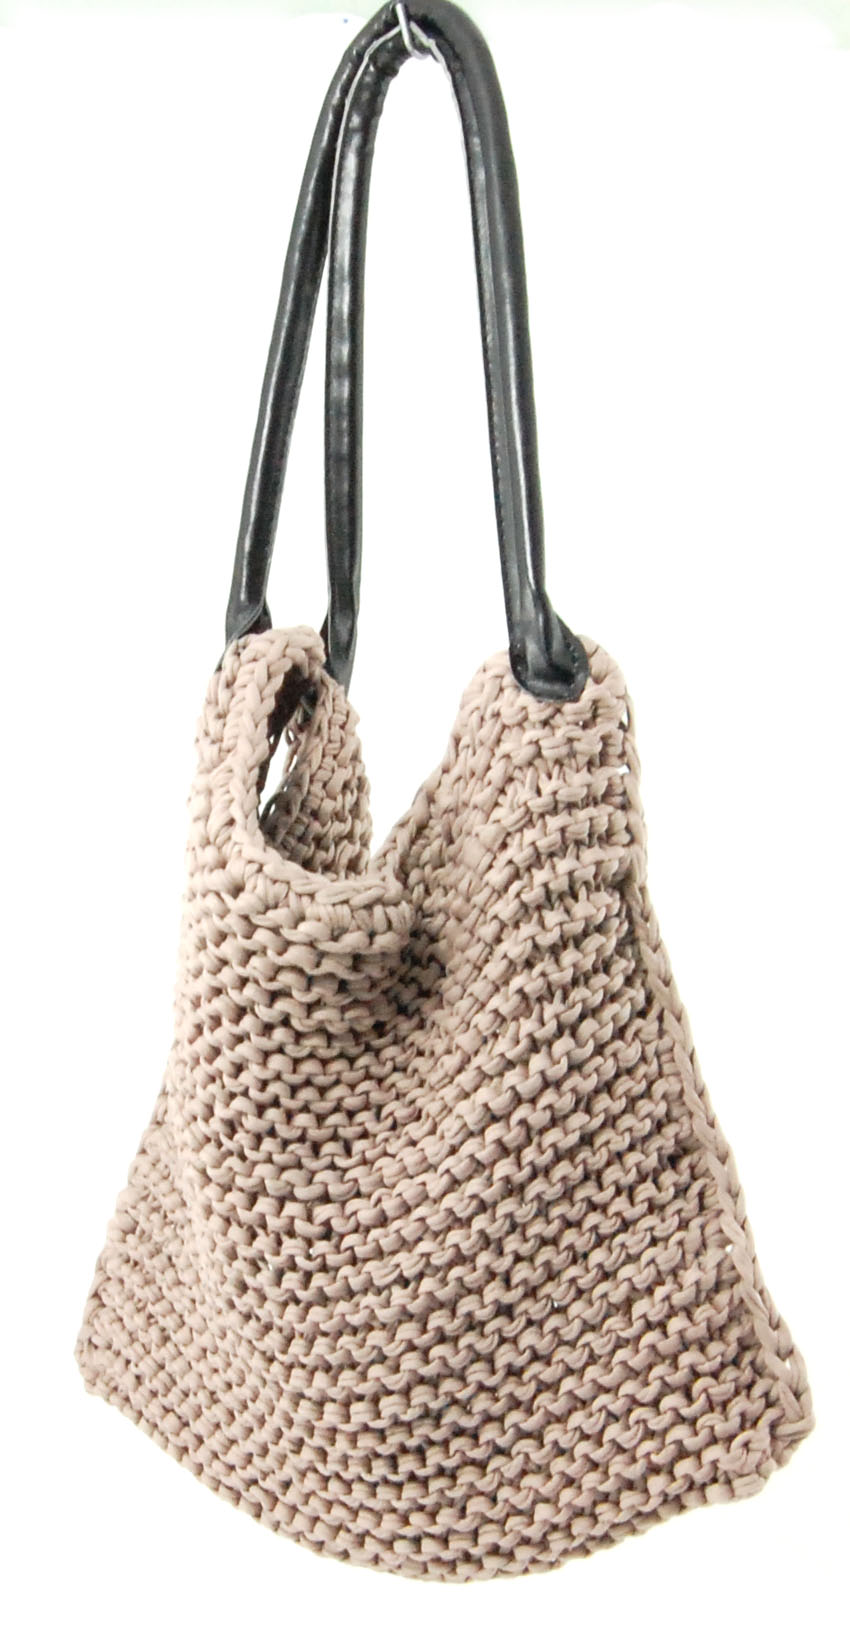 Woolen Crochet Purse : Knitted bag tutorial LVLY